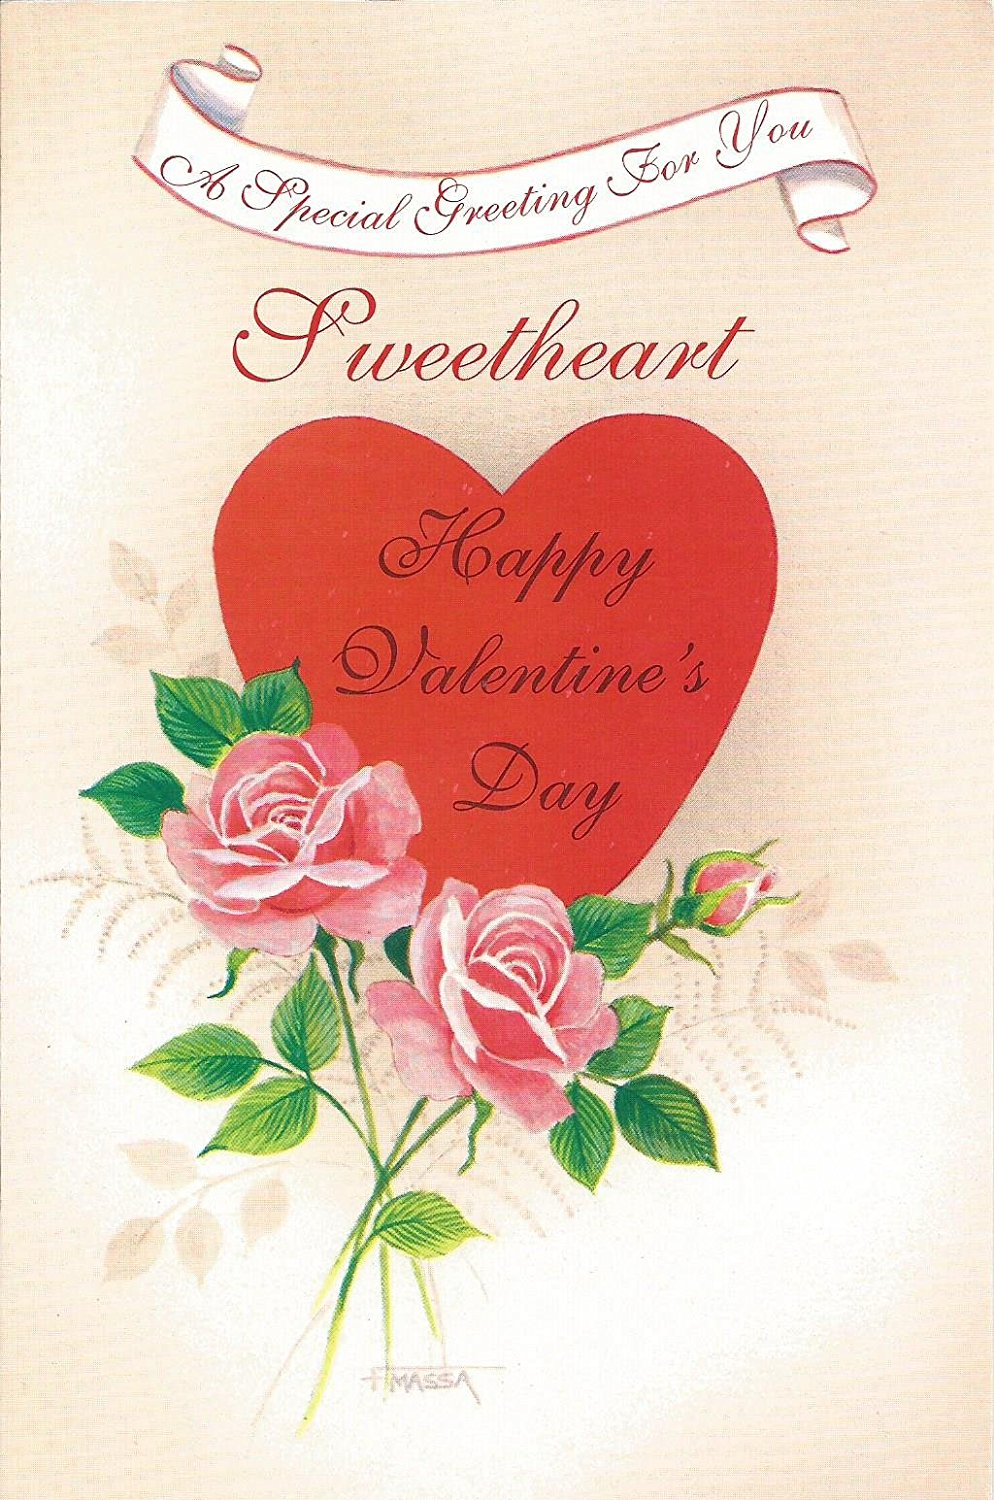 A Special Greeting For You Sweetheart Happy Valentines Day V5